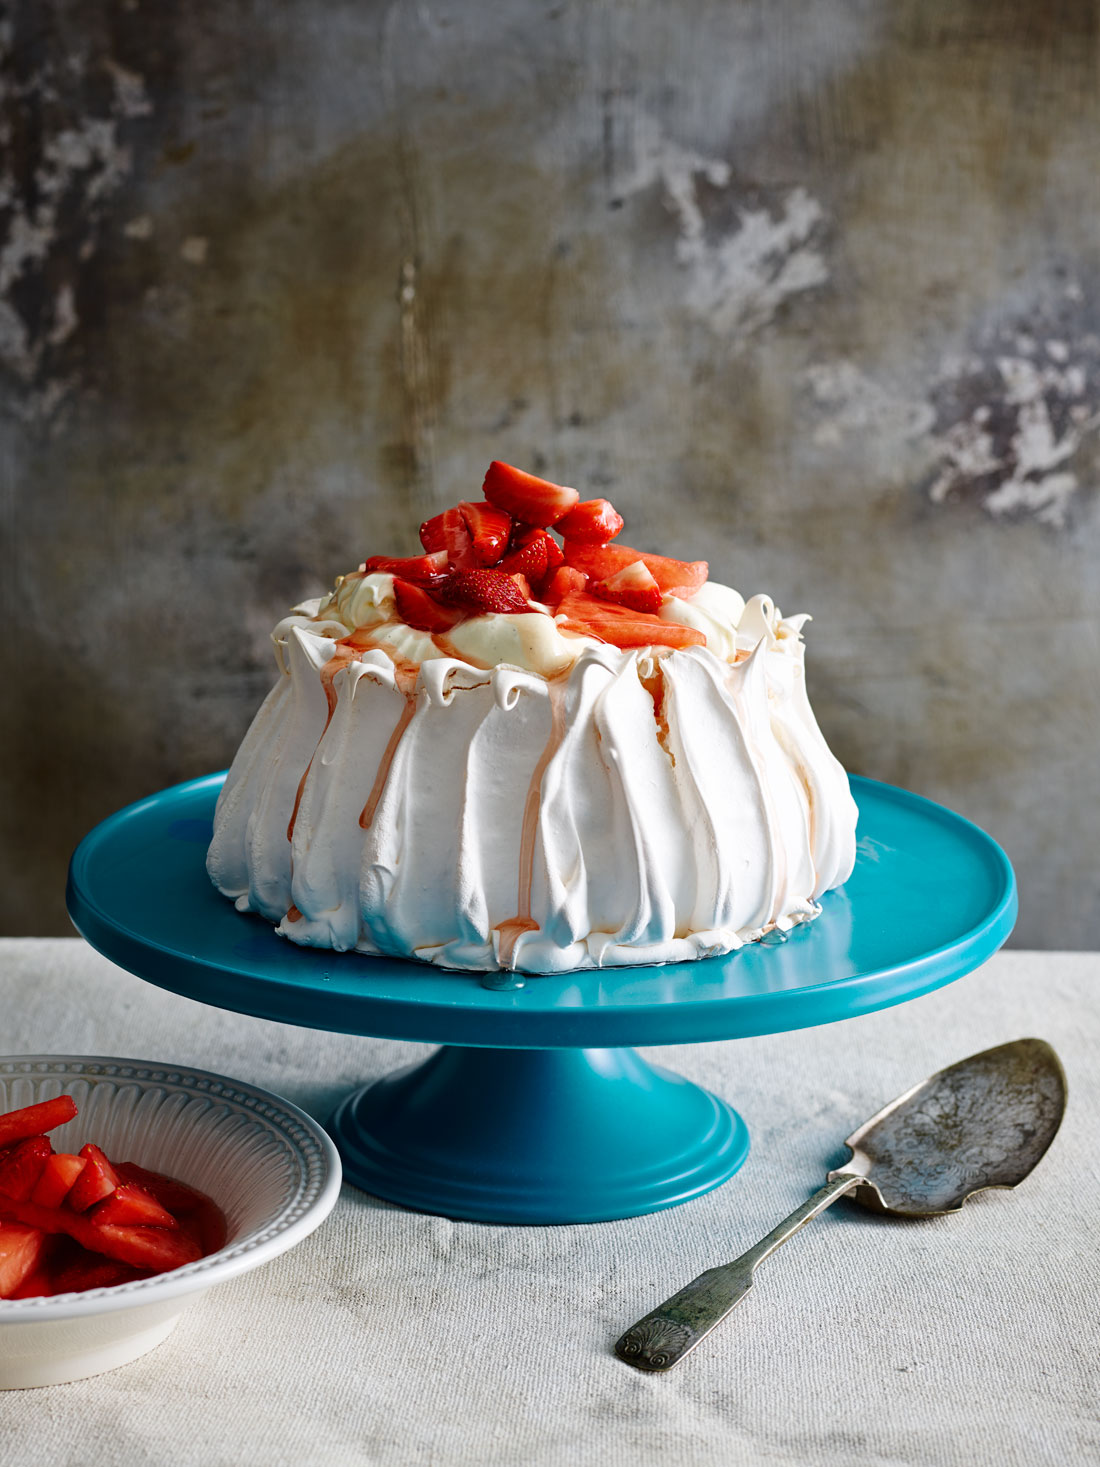 Pavlova Cake Wallpapers High Quality Download Free